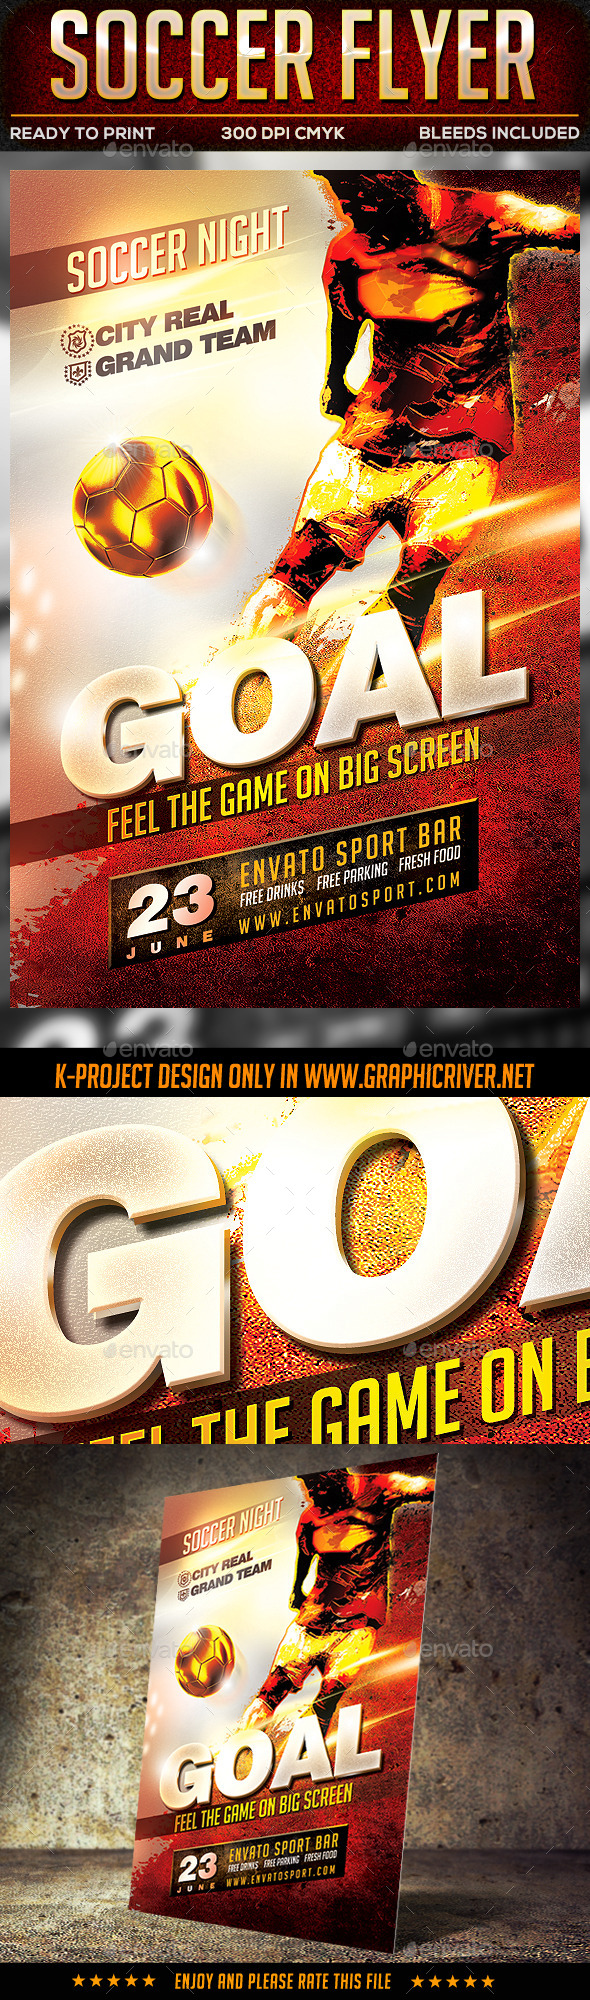 GraphicRiver Soccer Flyer 10525443